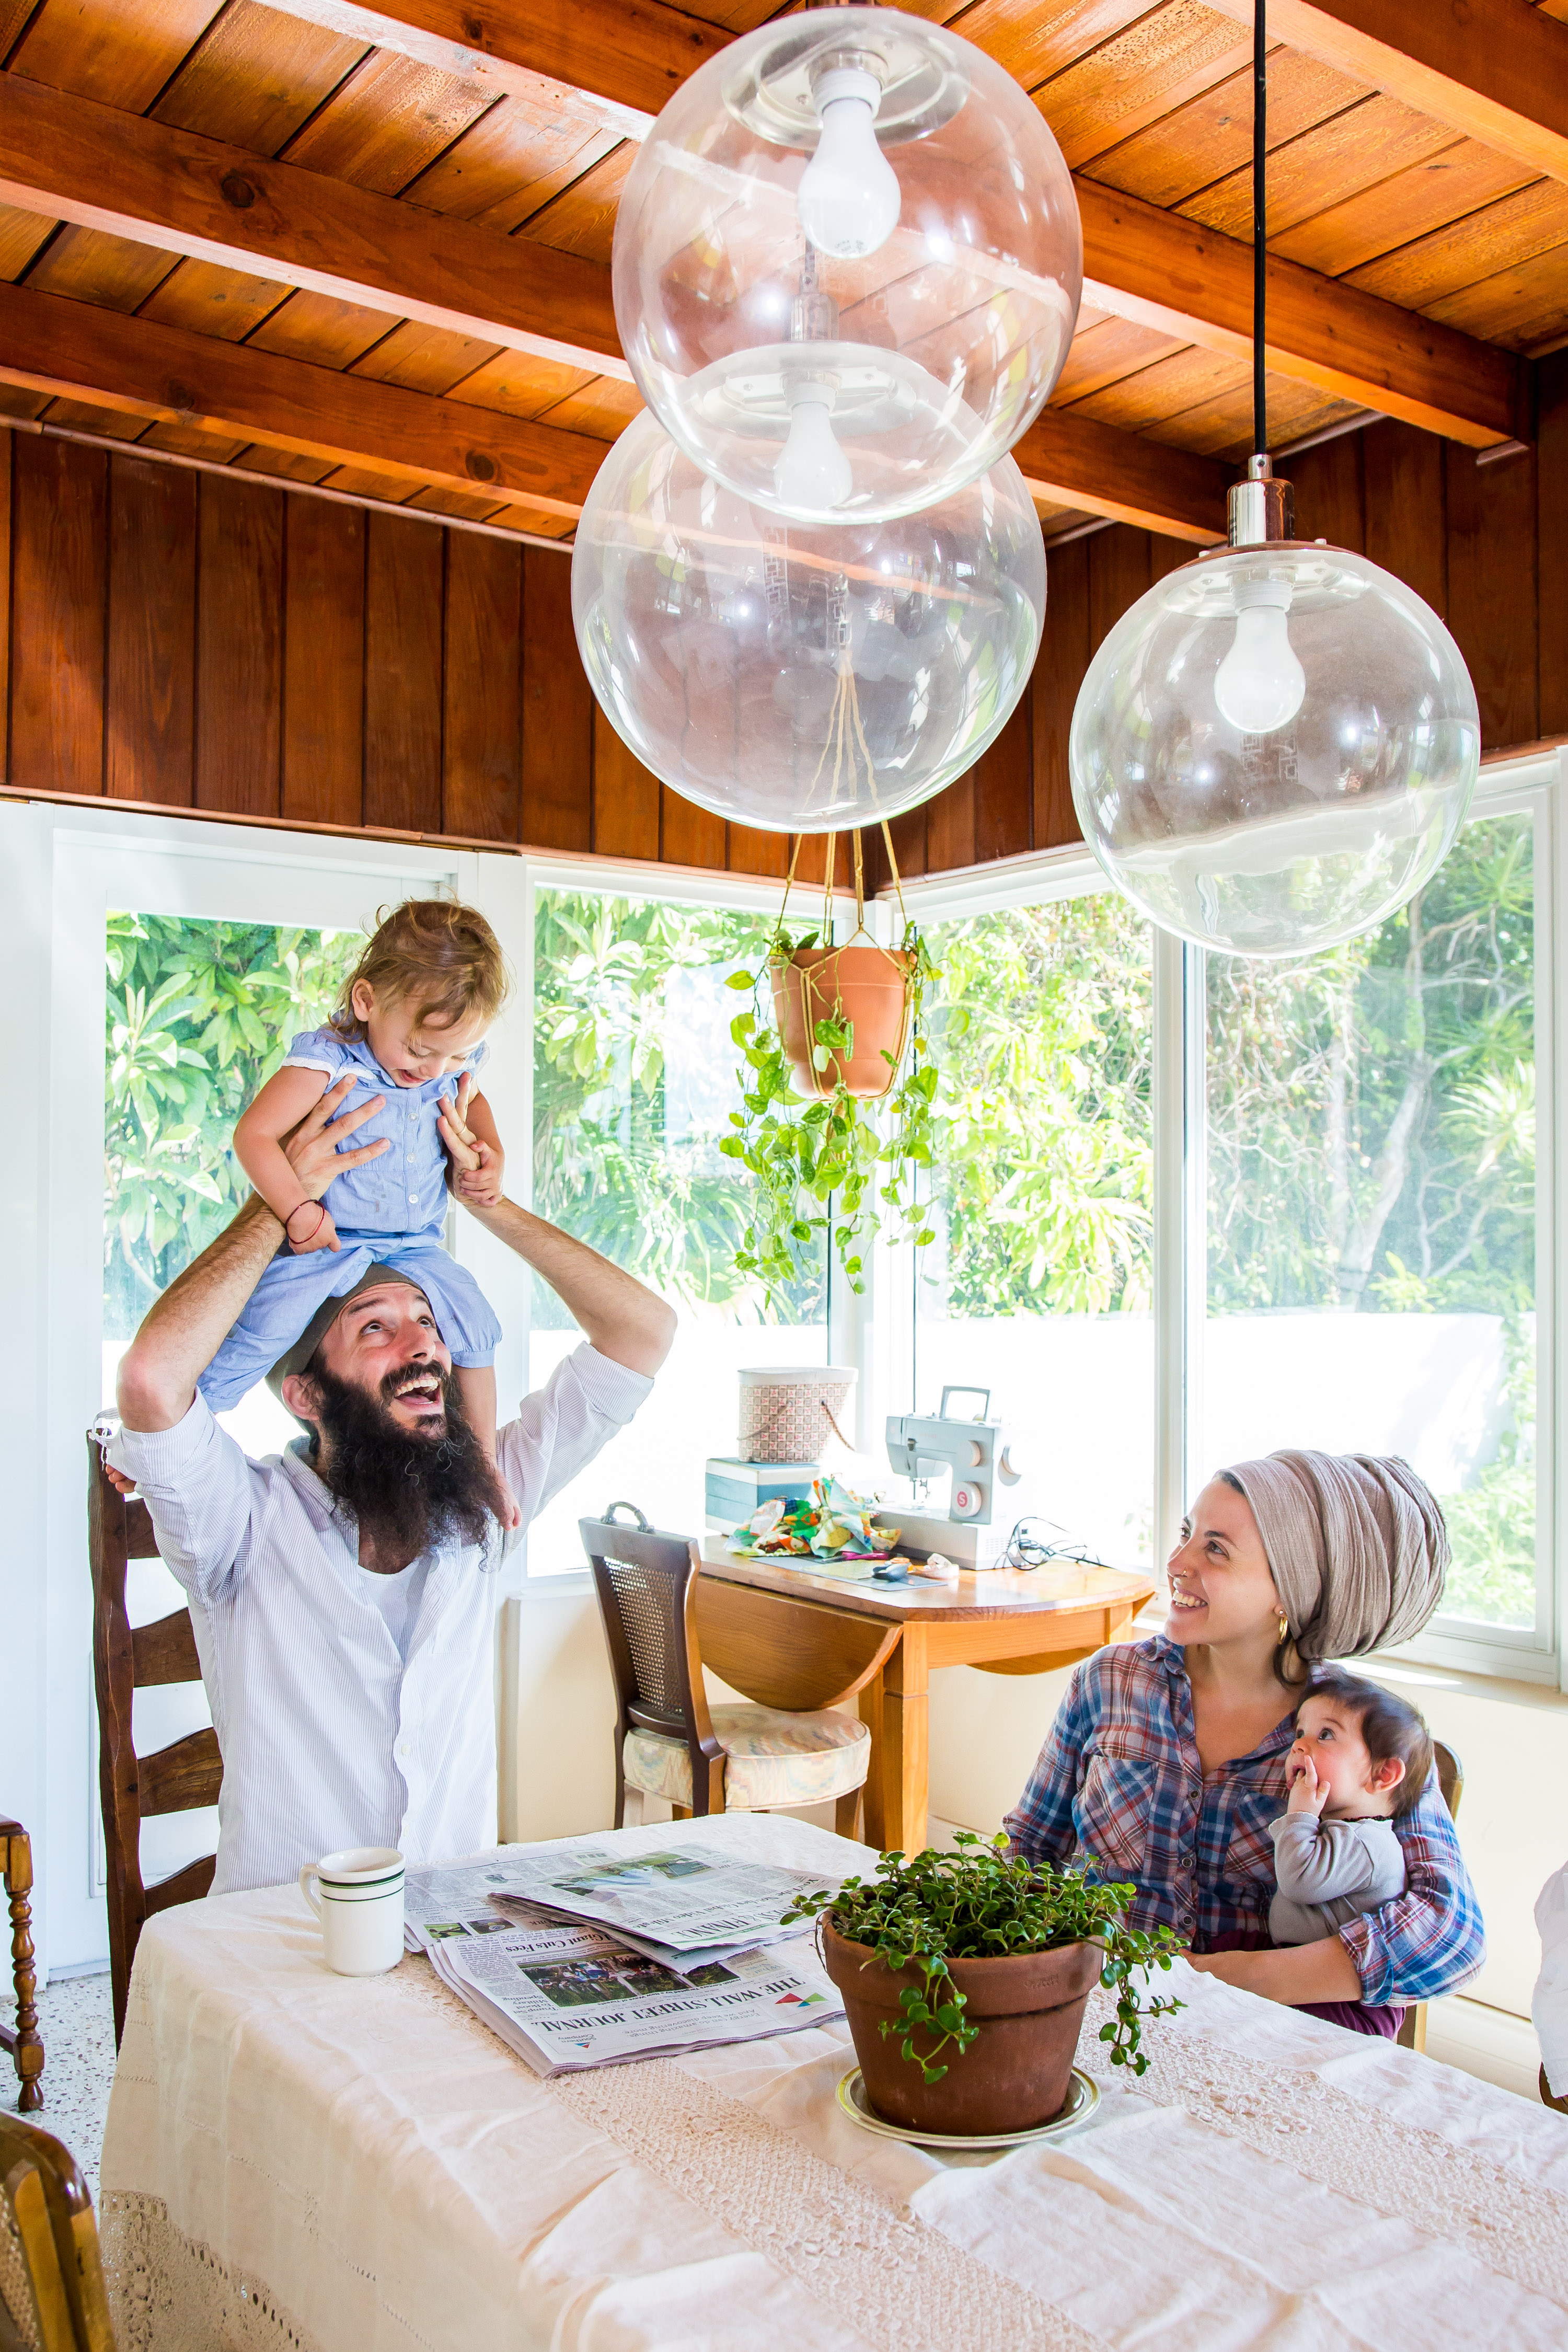 How Miami's Zak the Baker Starts His Day   Kitchn on home food, home fire, home tree, home satellite, home ice, home truck, home school, home tower, home science, home flower, home of superman metropolis illinois, home of superman krypton, home color, home community,